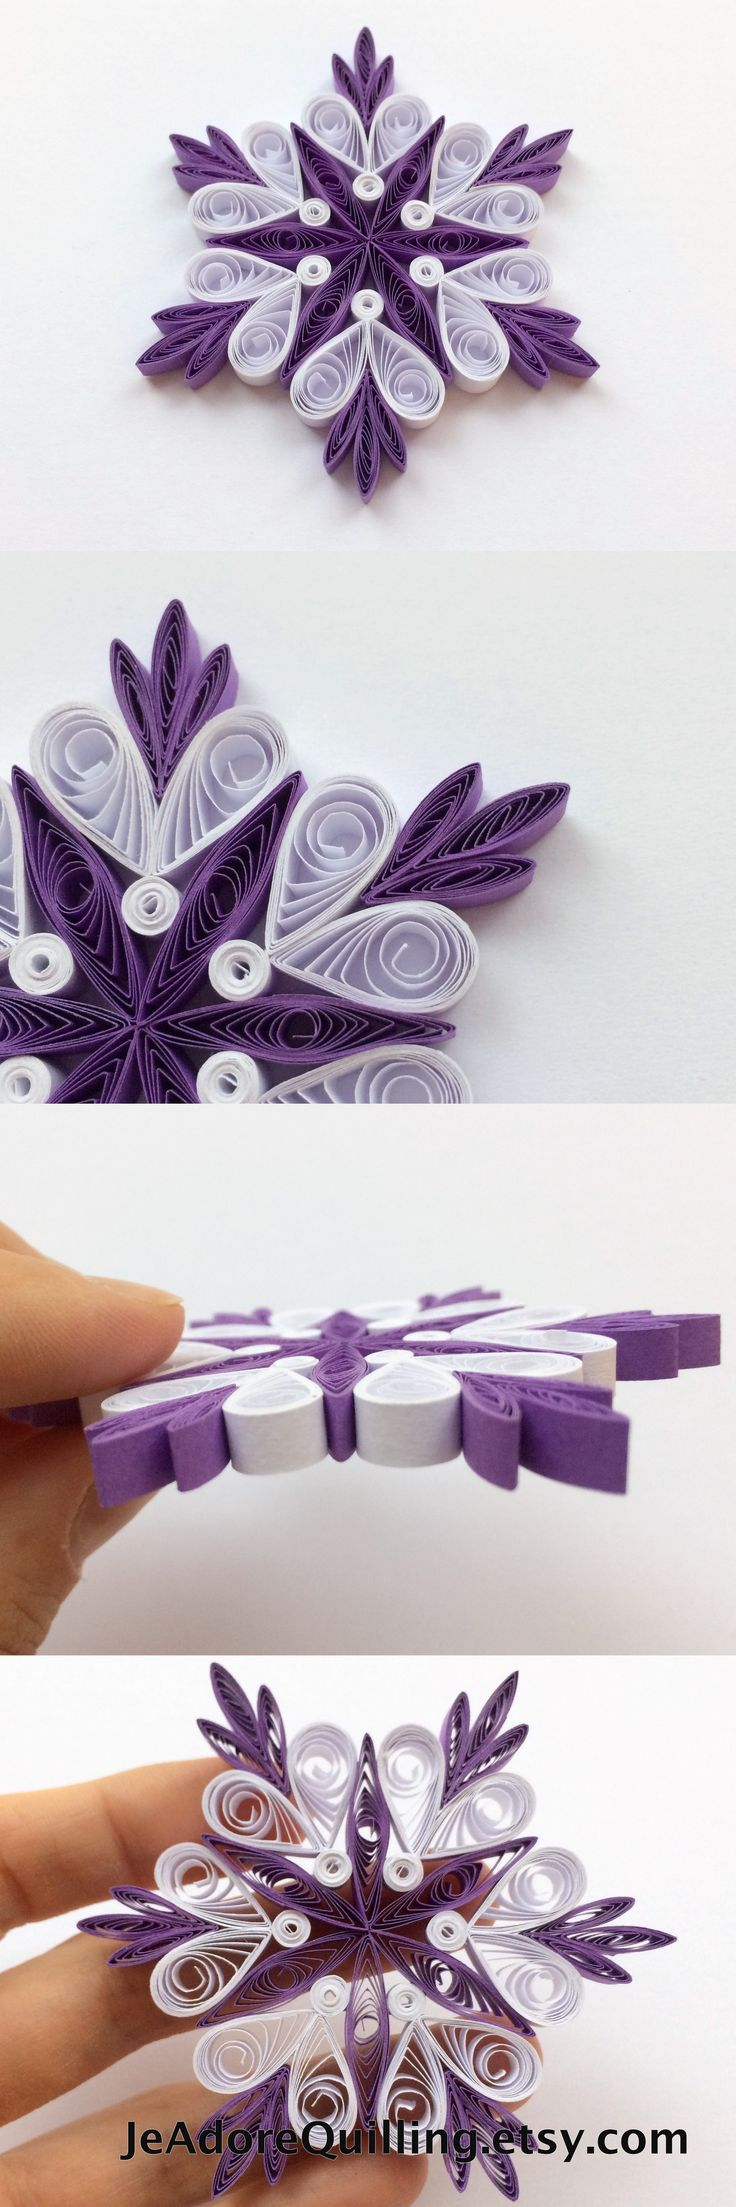 Snowflakes Violet White Christmas Tree Decor Winter Ornaments Gift Toppers Fillers Office Corporate Paper Quilling Quilled Handmade Art